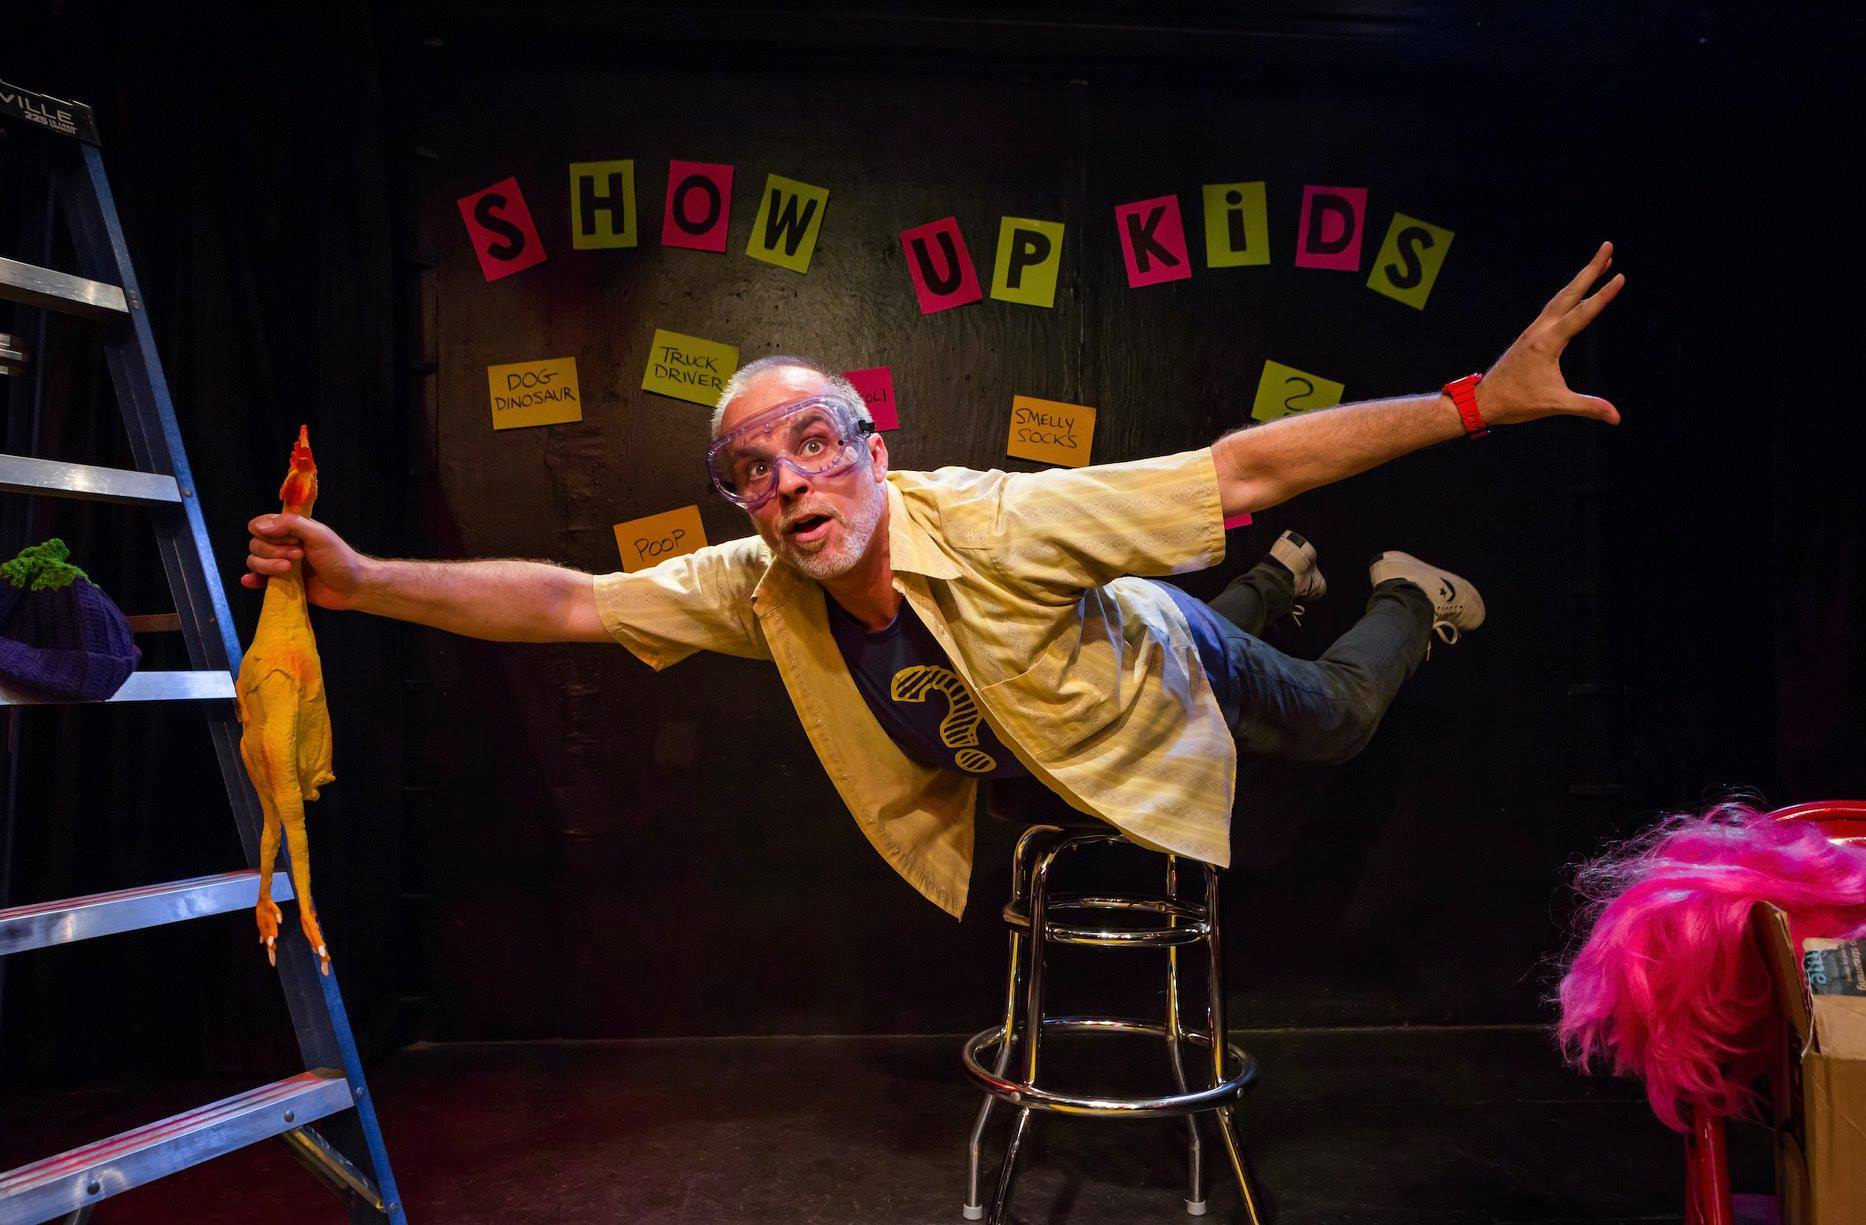 Show Up, Kids! at Kraine Theater (East Village) [sponsored]